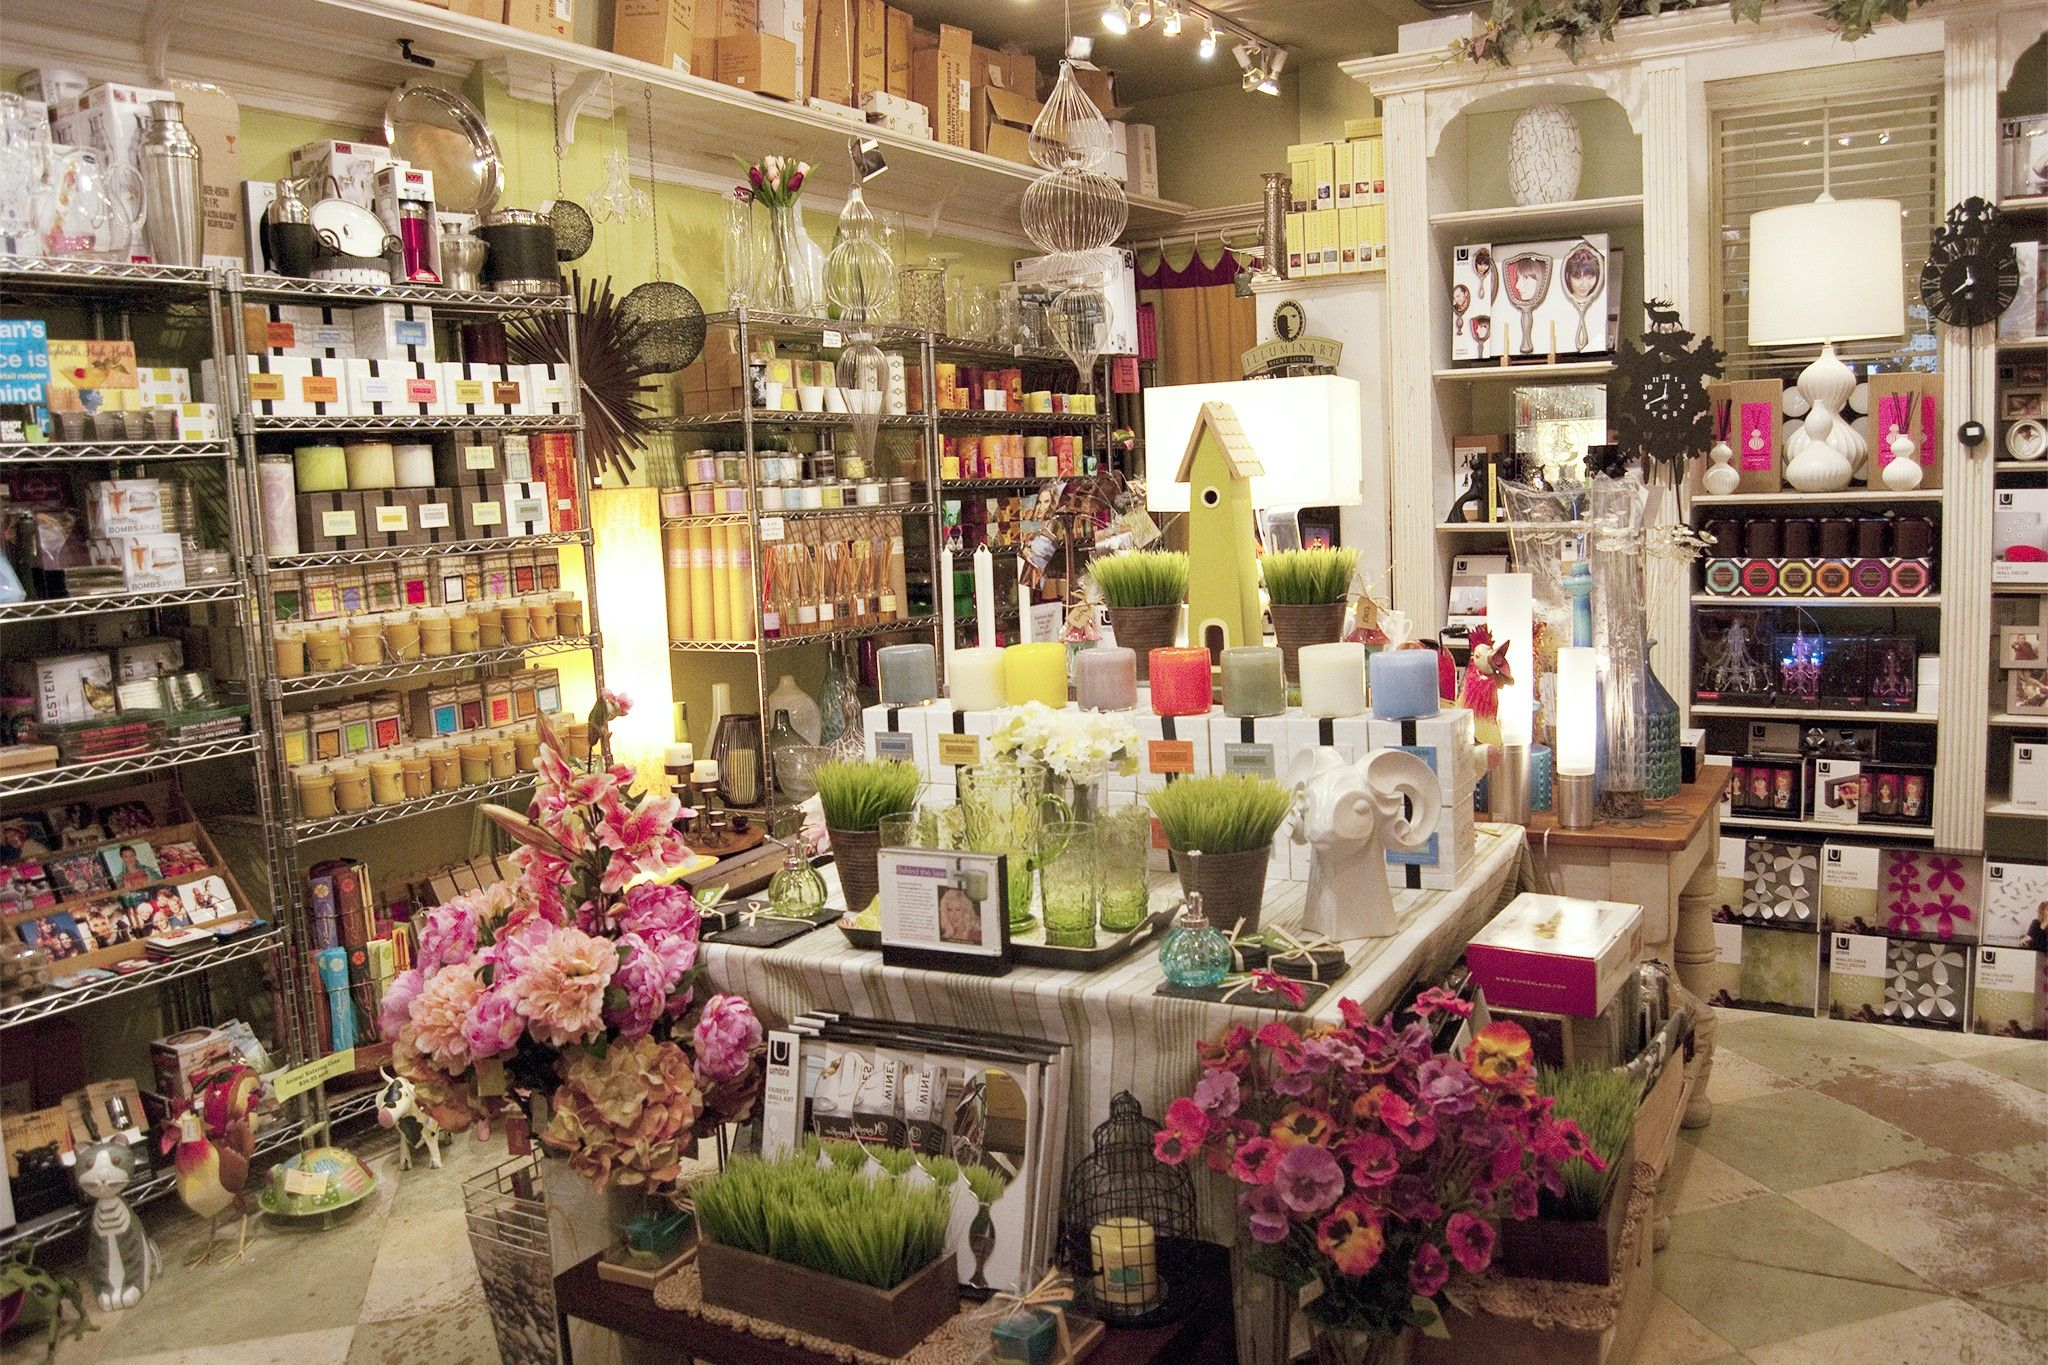 19 Amazing Design Stores To Inspire Your Restore Store Renovation Best Home Ideas And Inspiration Home Goods Decor Wholesale Home Decor Decor Shopping Online